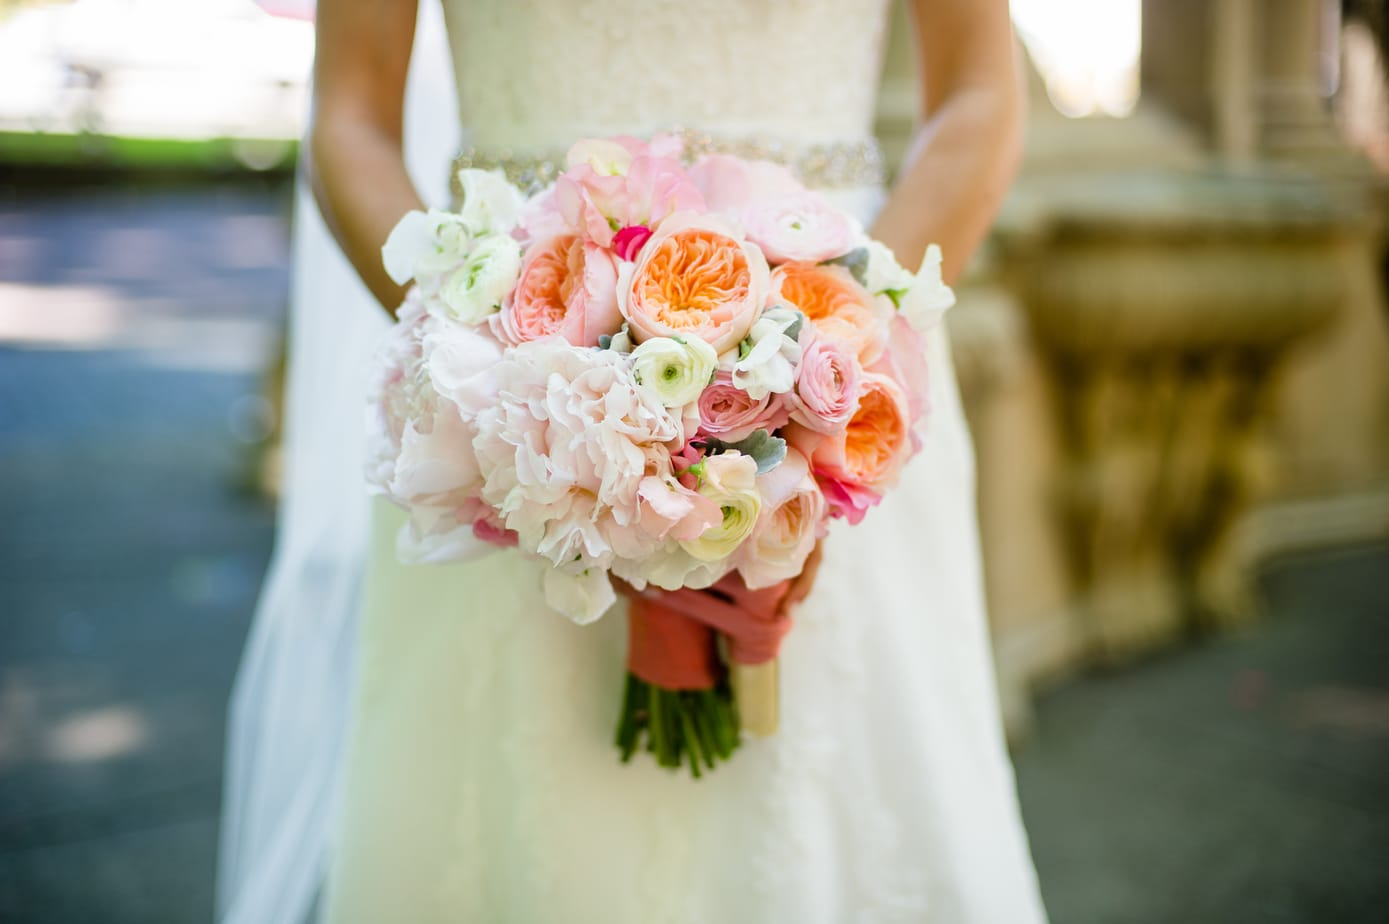 As You Wish Floral Design Early Spring Wedding At The Hy: Portland Wedding Flowers